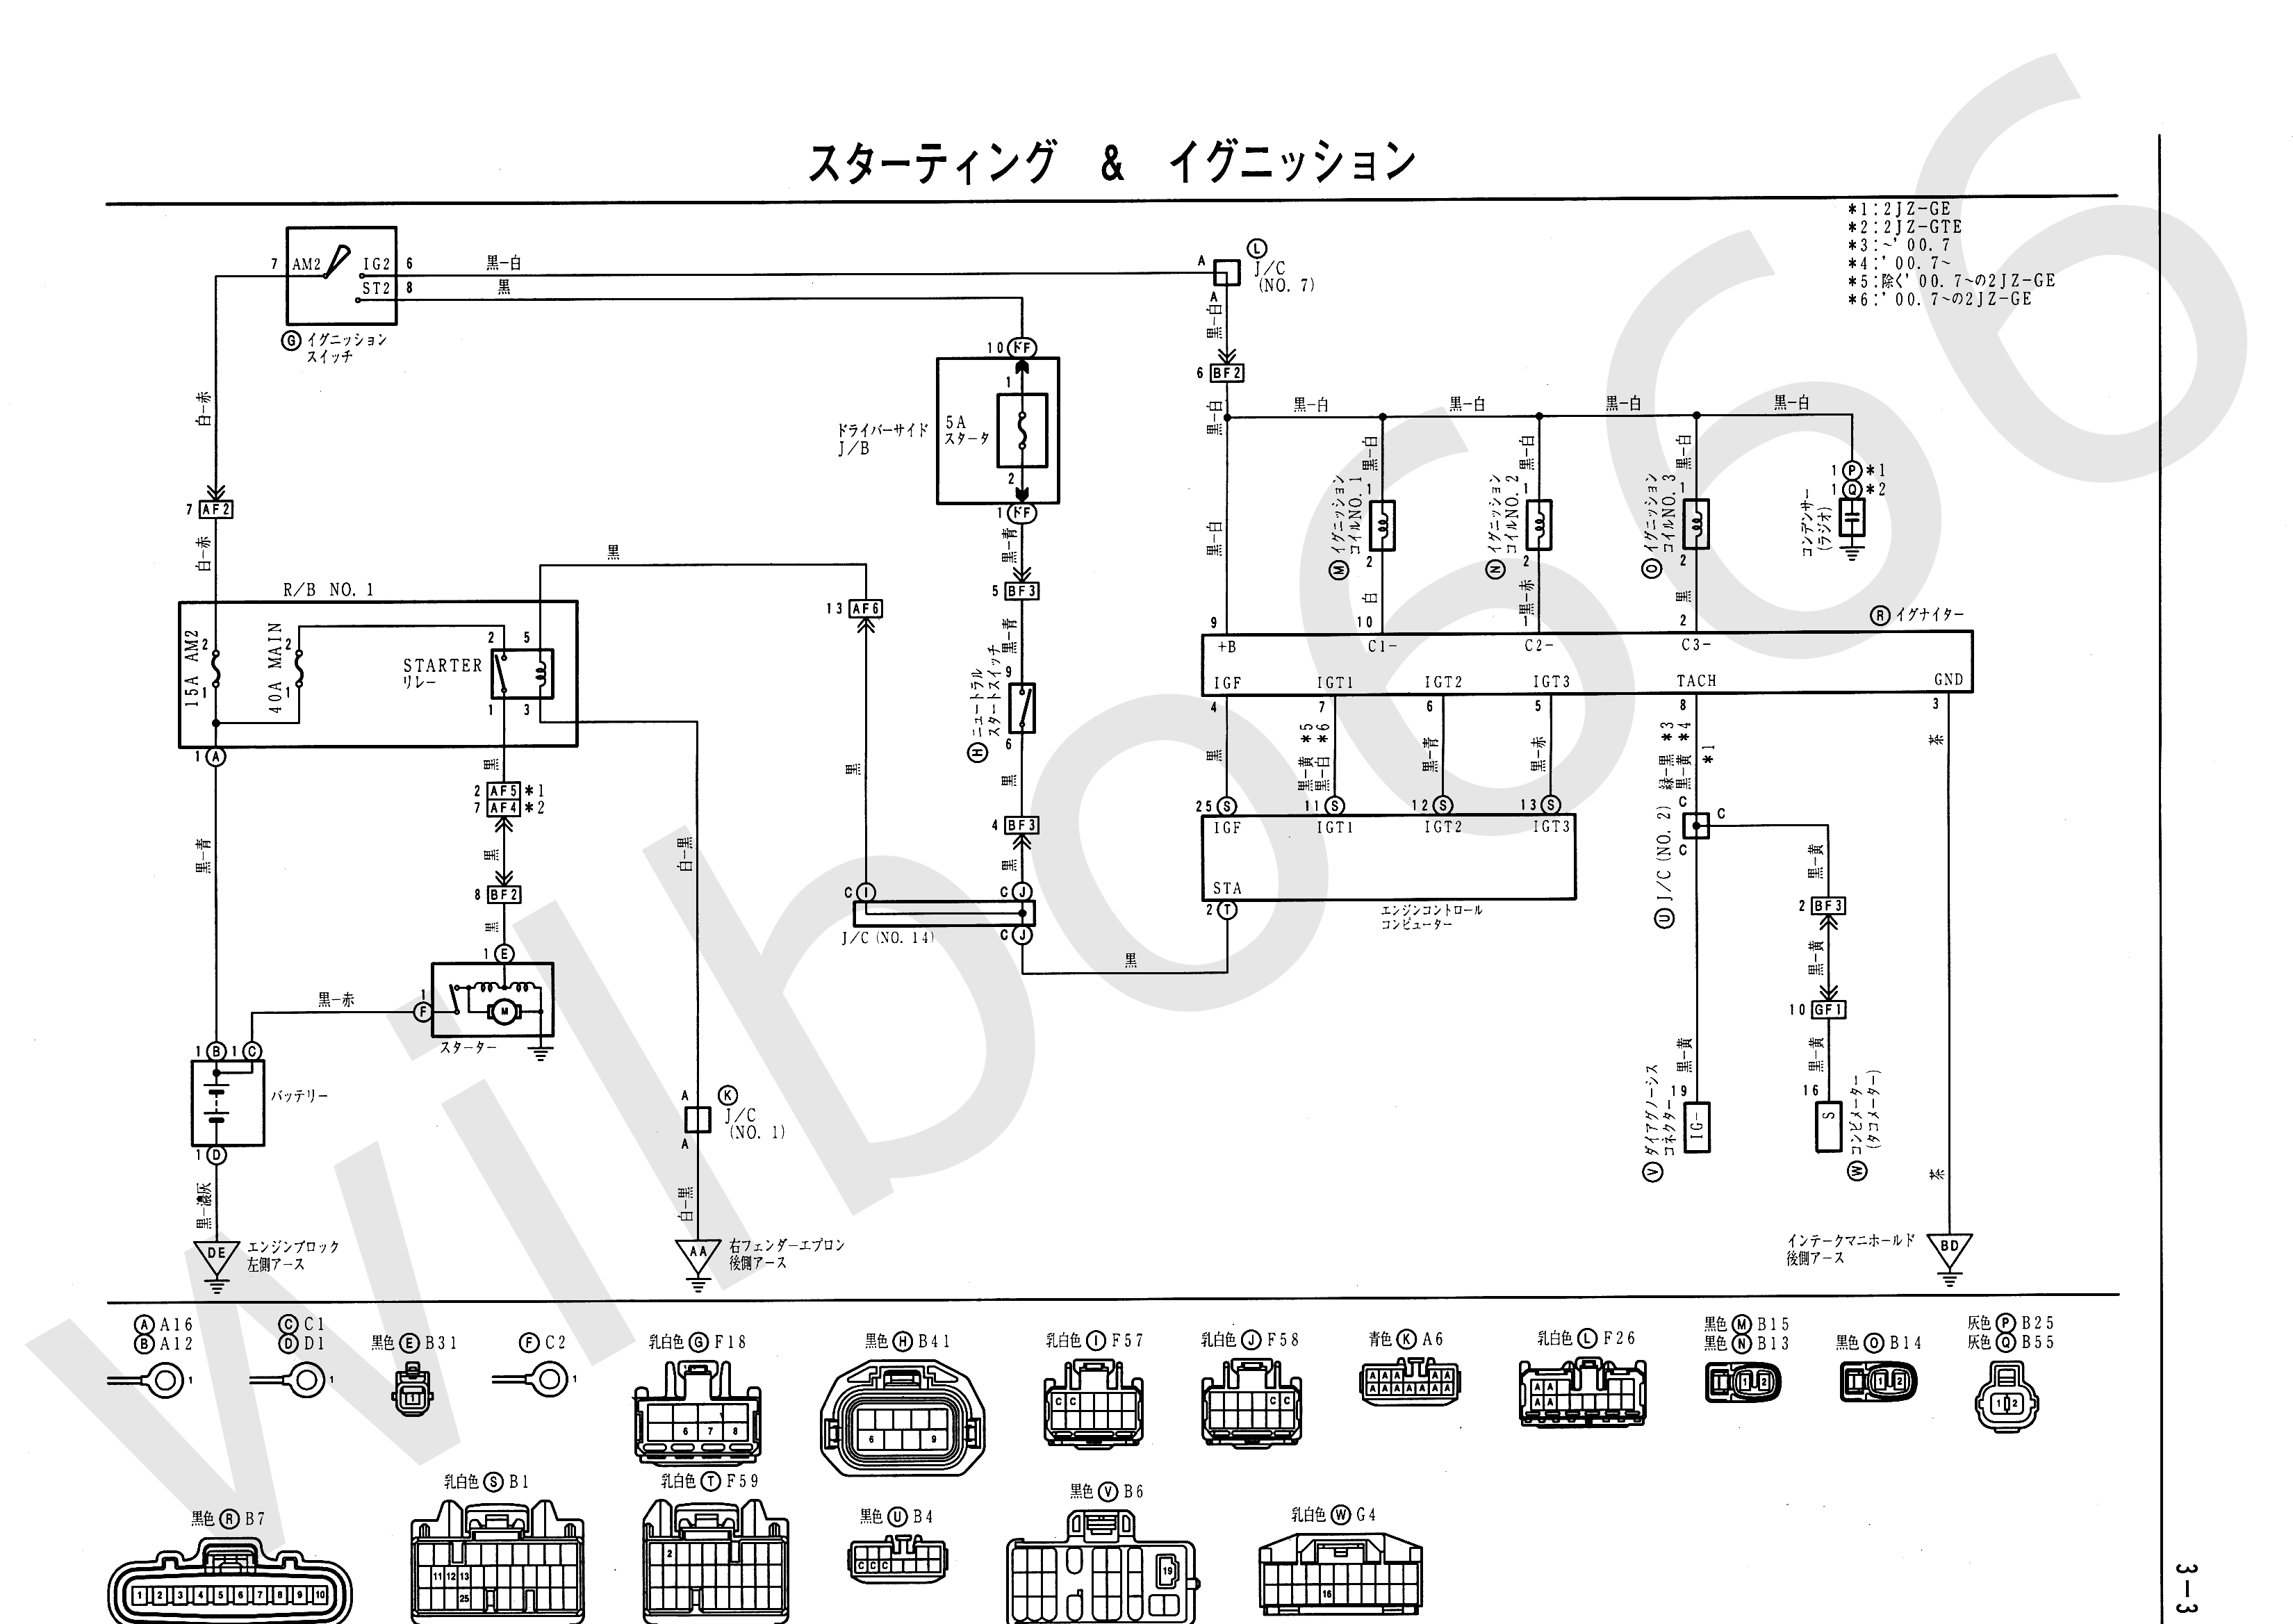 1996 Toyota Aristo Wiring Diagram Books Of Wiring Diagram \u2022 1991  Toyota Pickup Engine Diagram 1996 Toyota Aristo Wiring Diagram